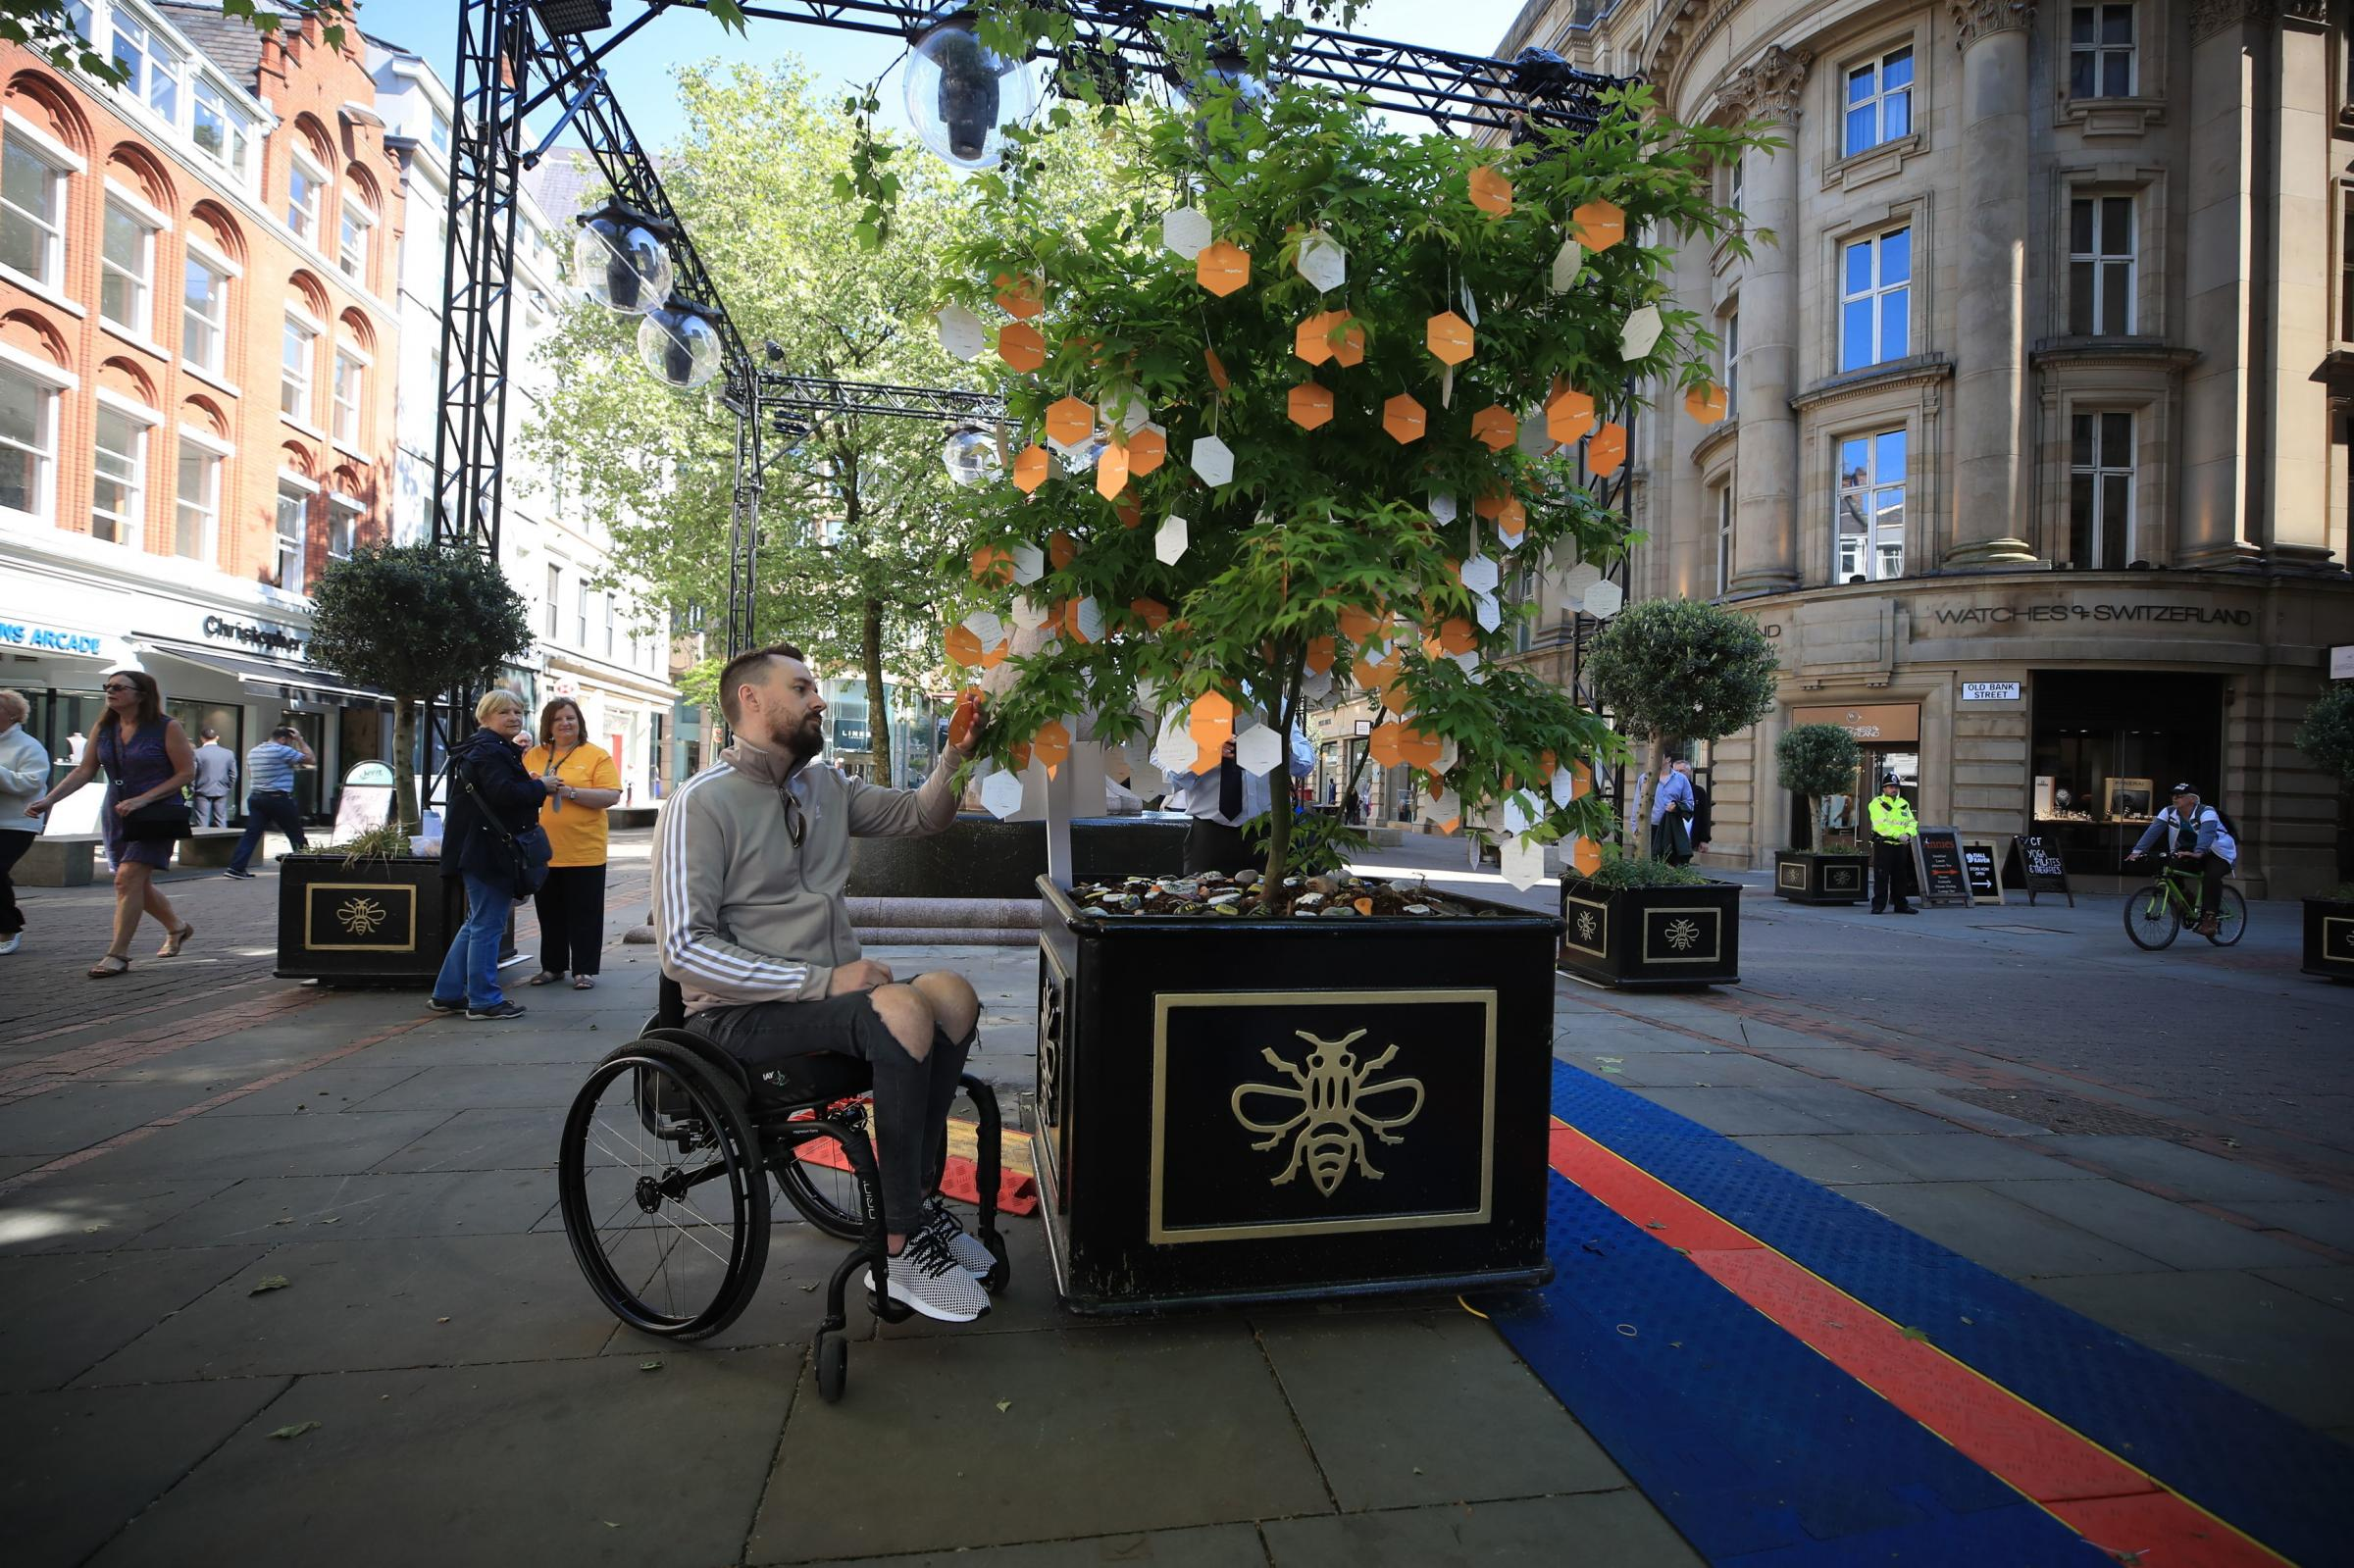 Martin Hibbert, who suffered life-changing injuries in the Manchester terror attack, reads messages left on a 'Tree of Hope' in St Ann's Square, Manchester